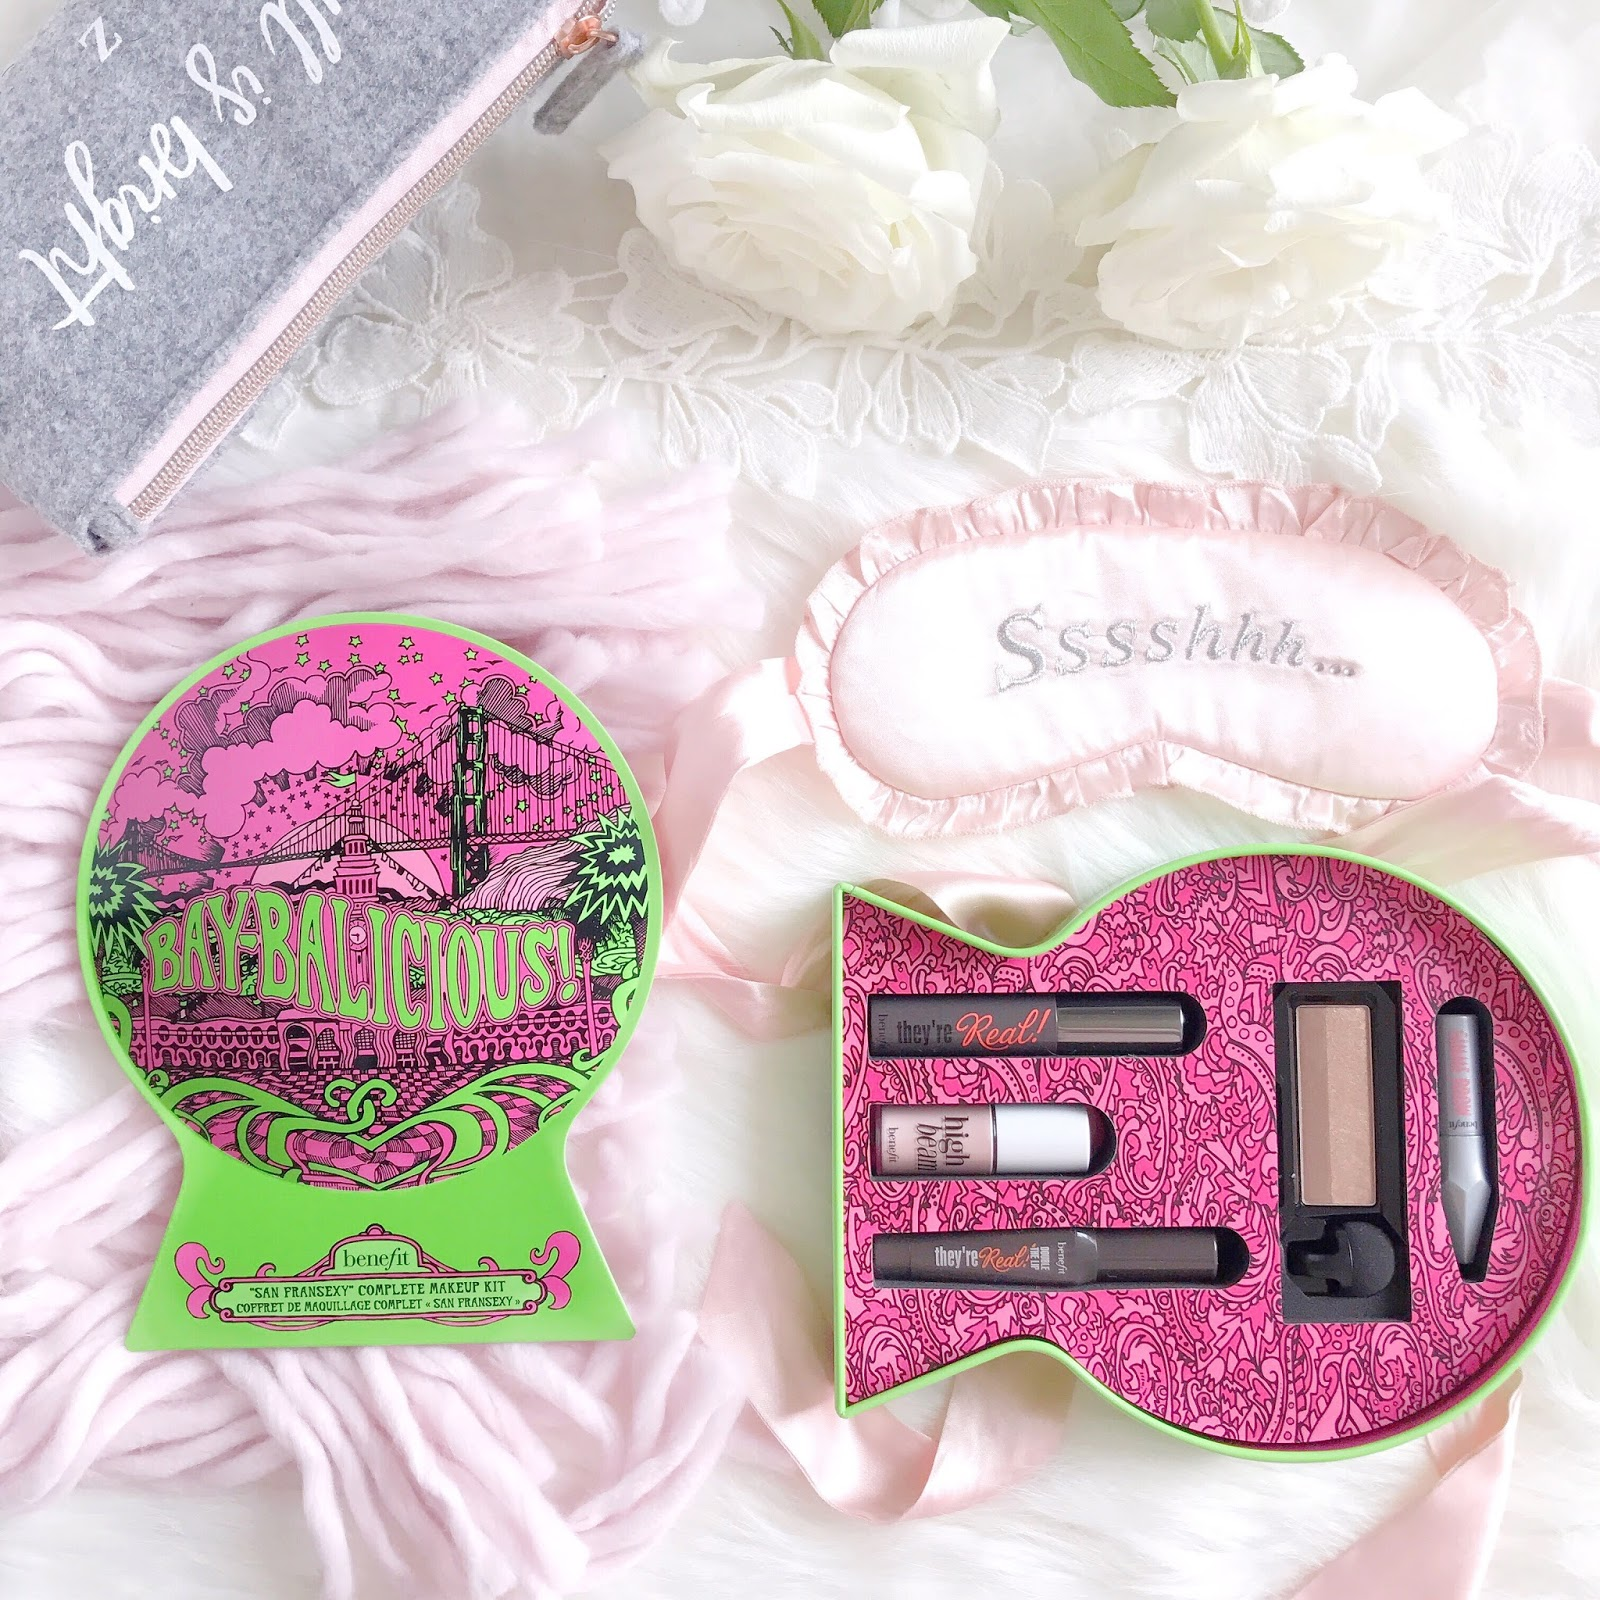 Benefit Cosmetics Christmas Gifting | BAYbalicious Makeup Gift Set